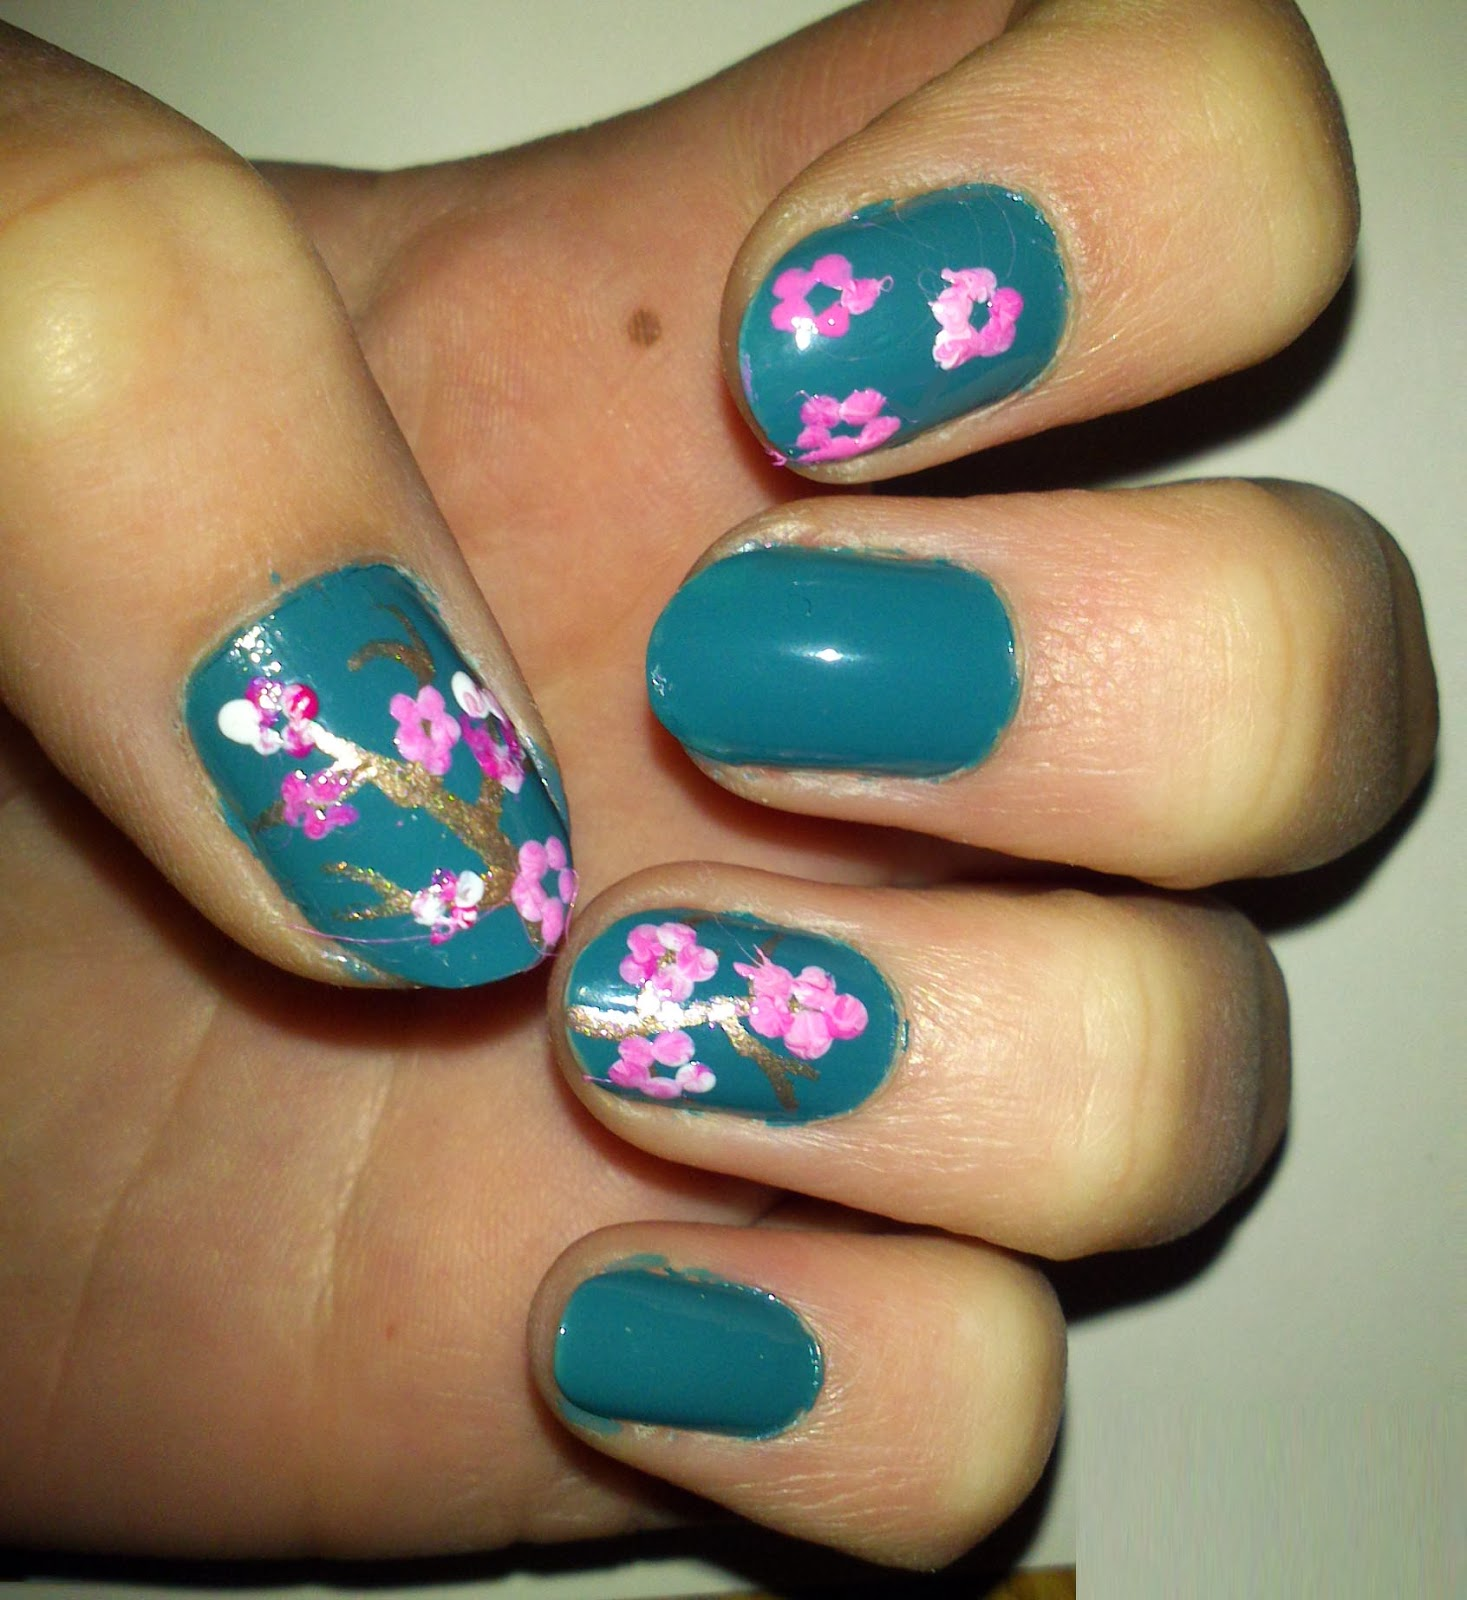 Nail Art Newbie: Busy Girls Nails Challenge: Week 1 Teal